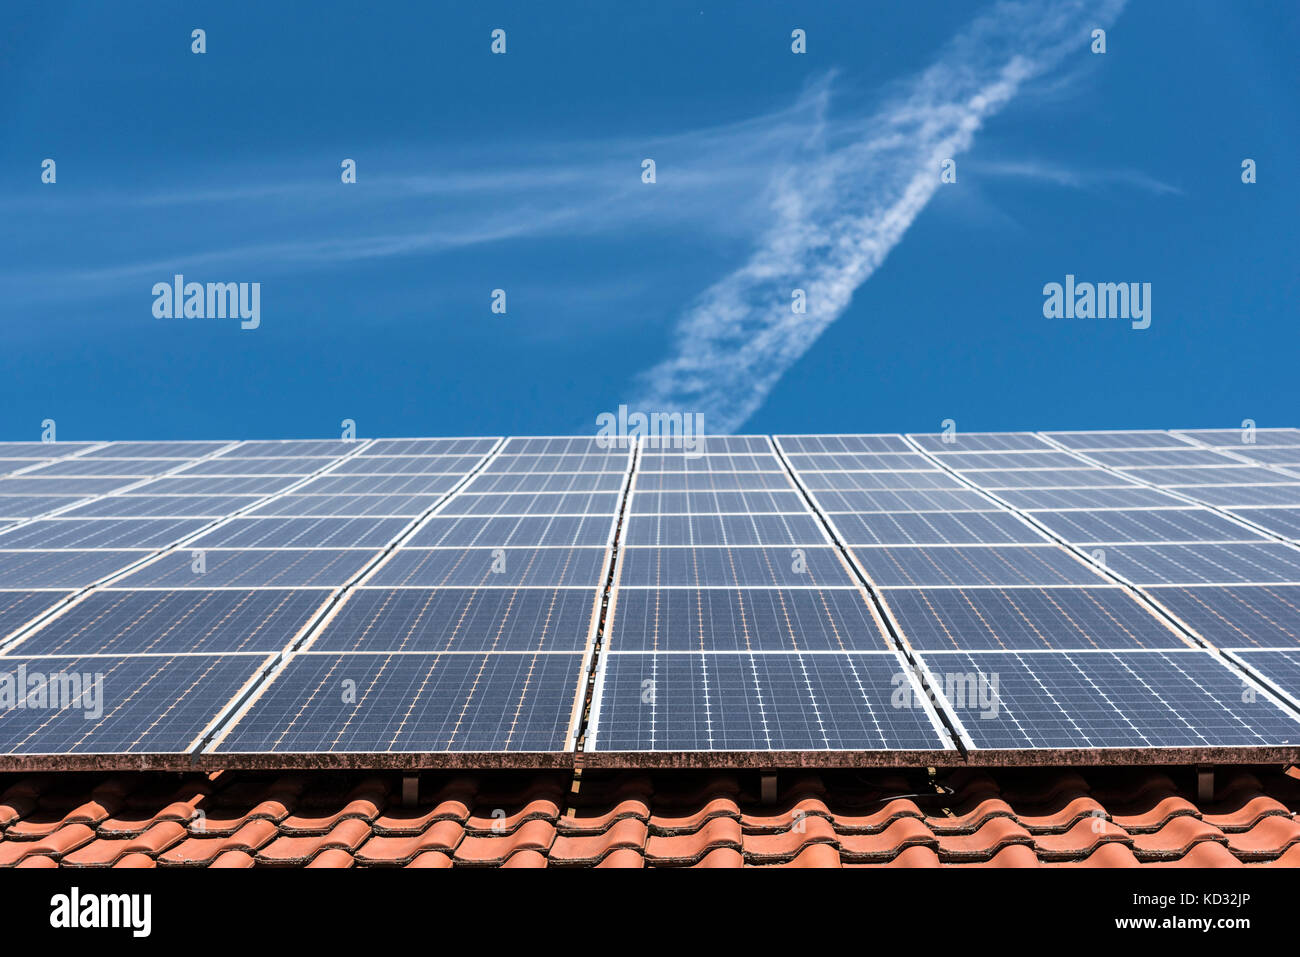 Solar panels on roof, low angle view, Munich, Germany - Stock Image